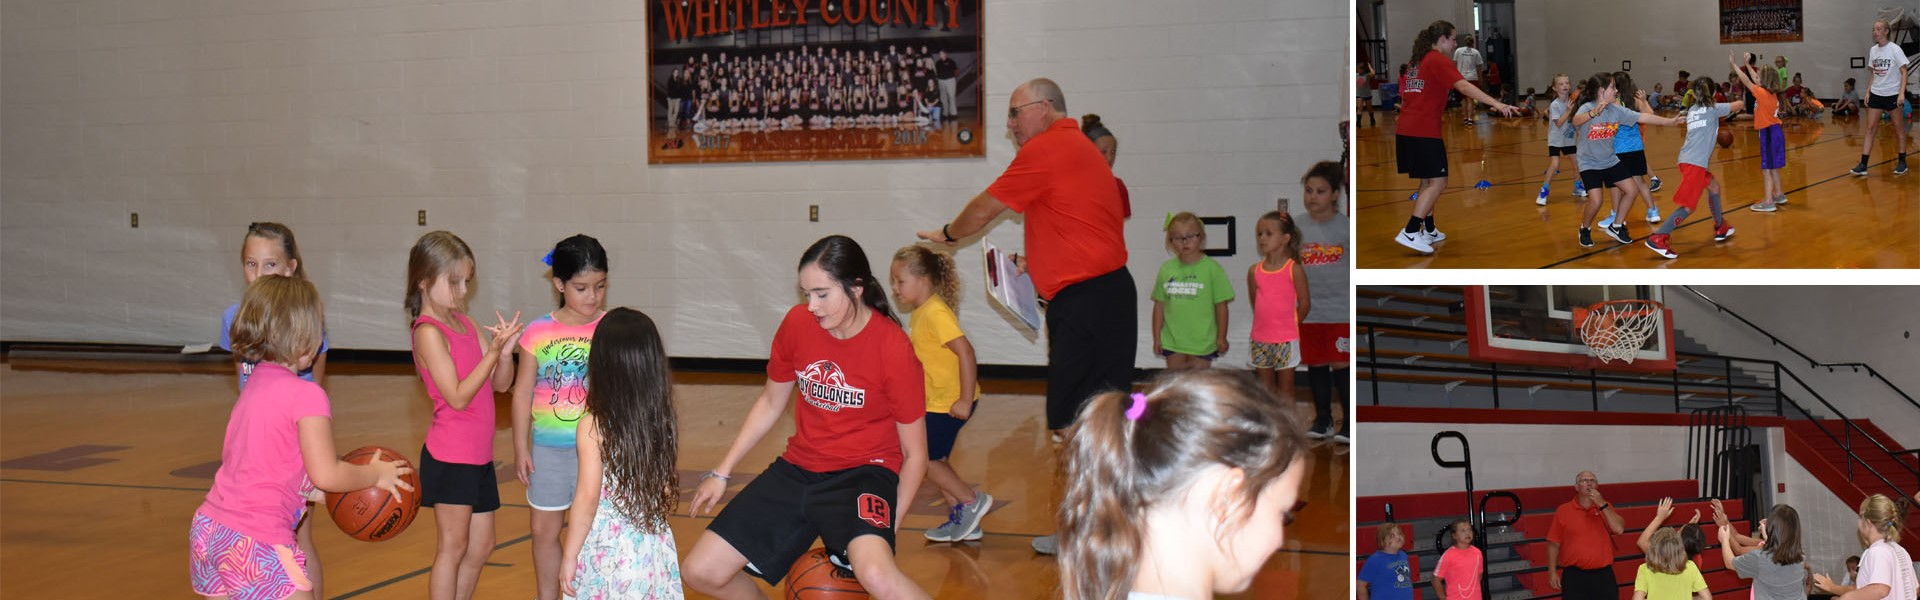 2018 Lady Colonels Basketball Camp